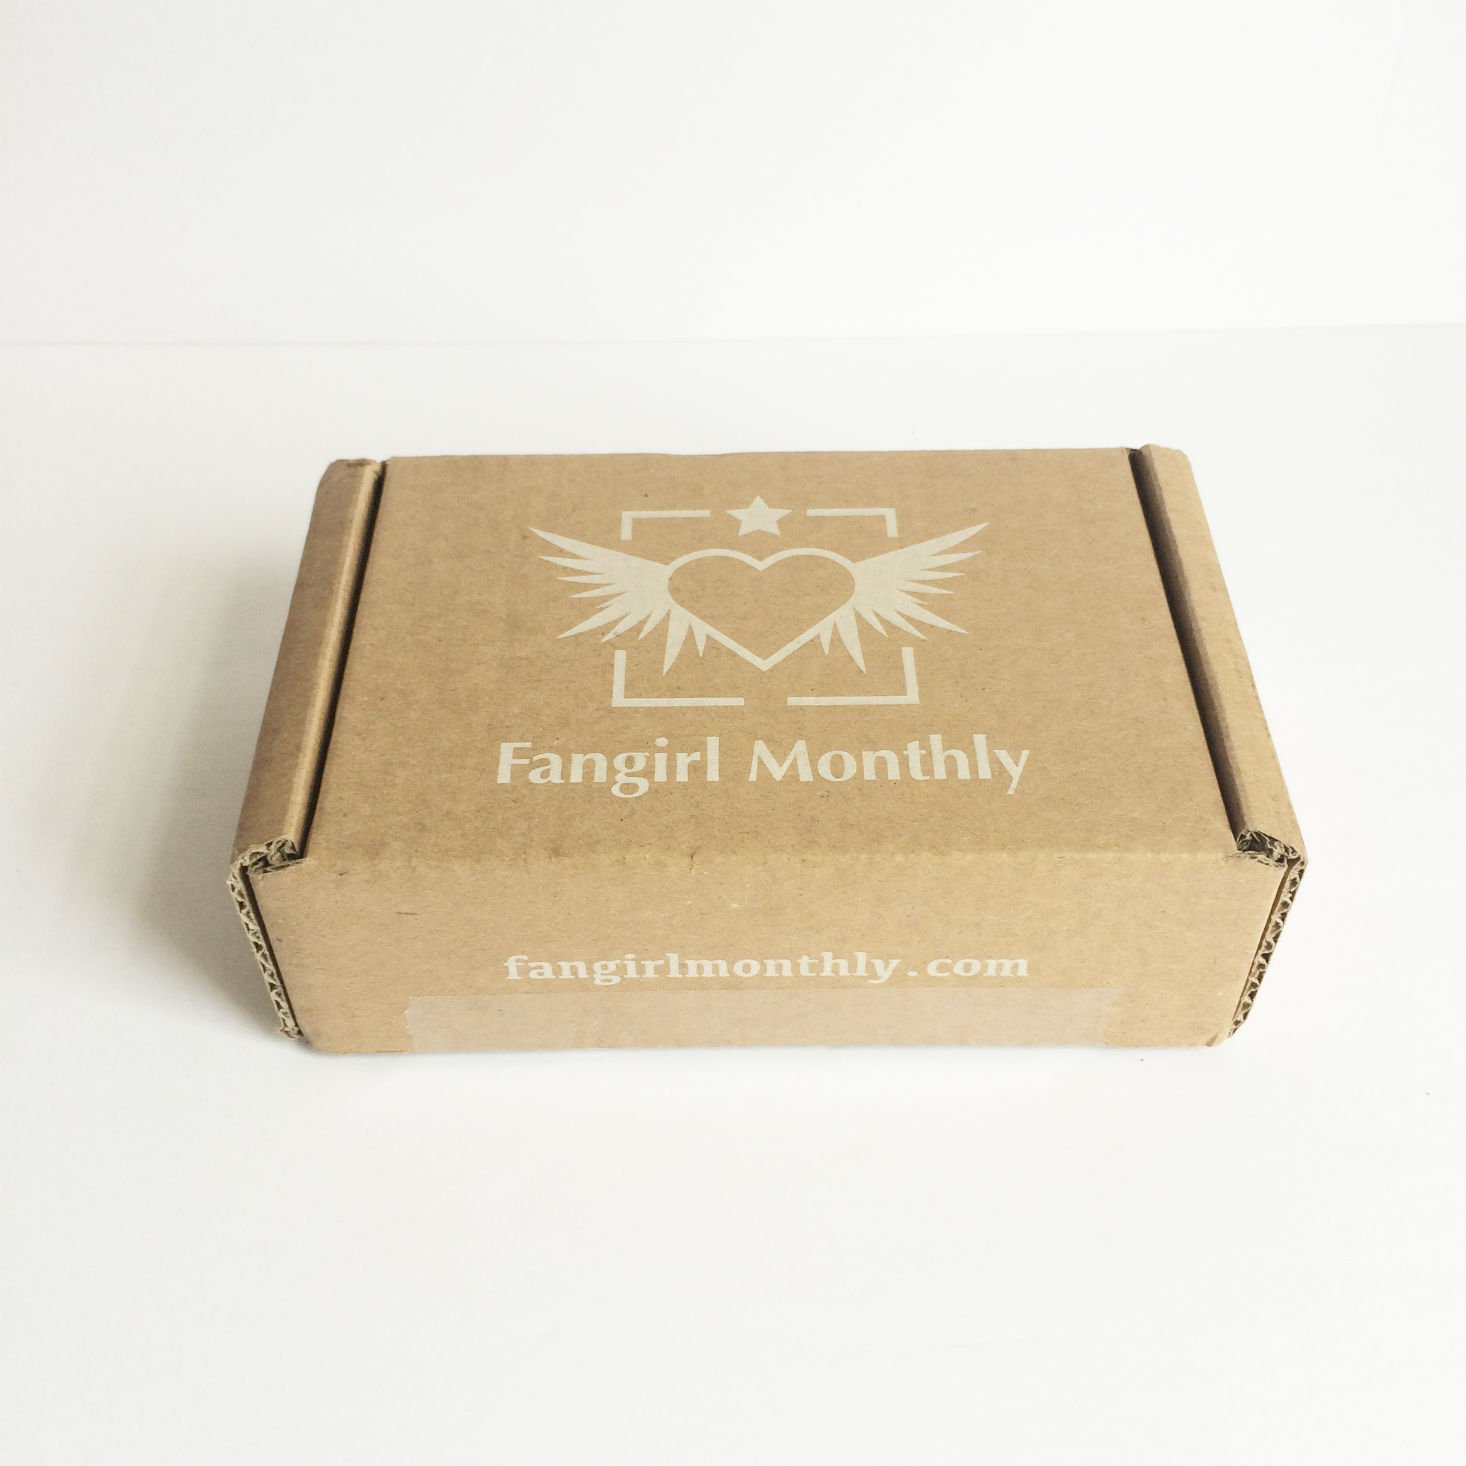 What's inside Fangirl Monthly's October box? Read our review to find out!